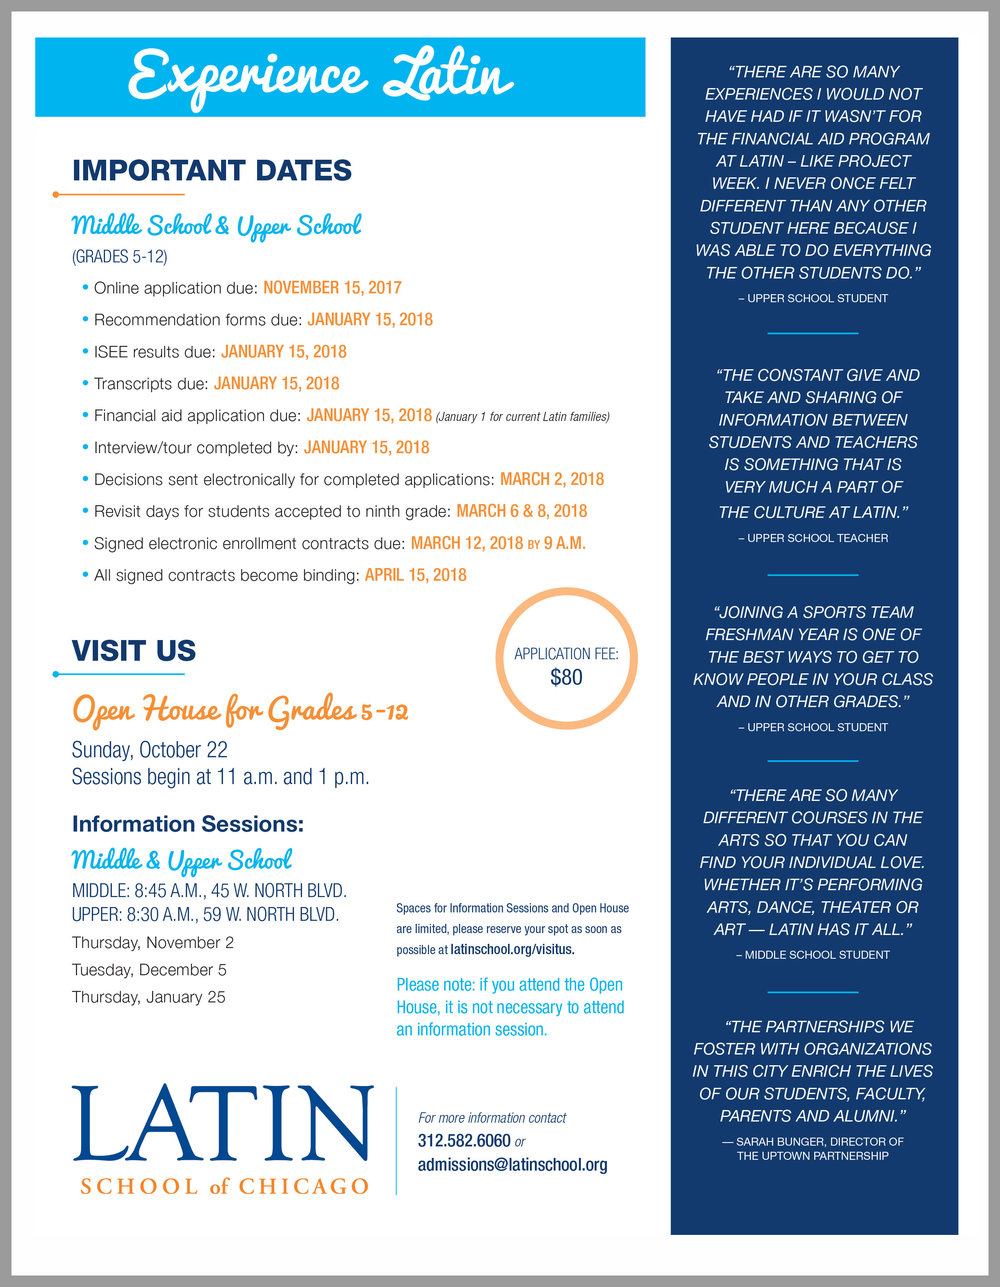 The one-sheet has stats about Latin on one side and information about visiting the school and applying on the other.